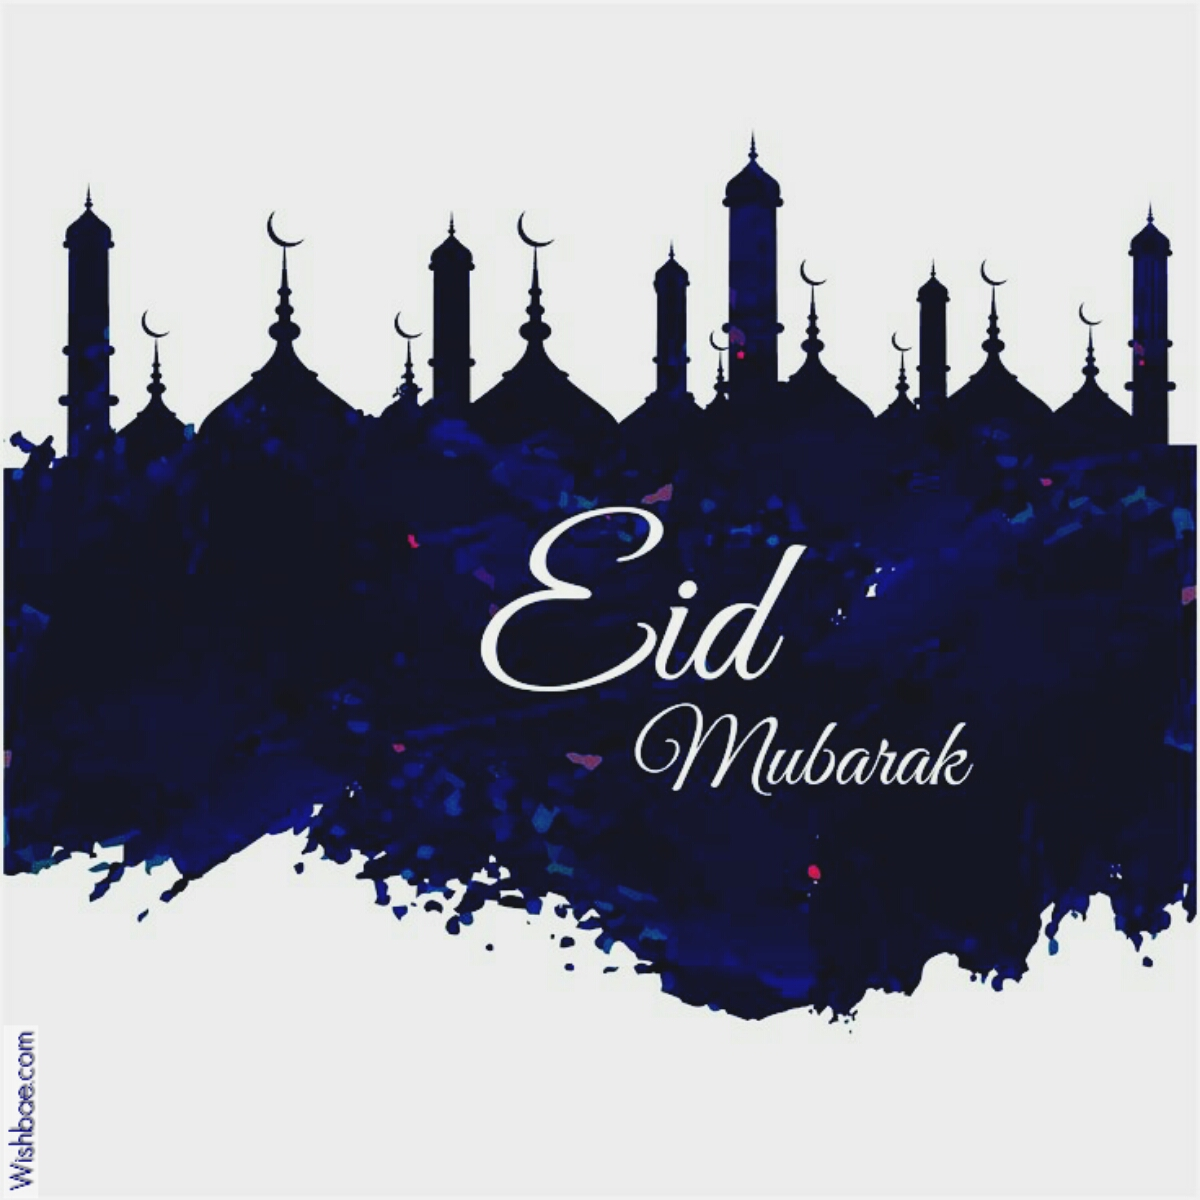 Eid Mubarak Images for Friends